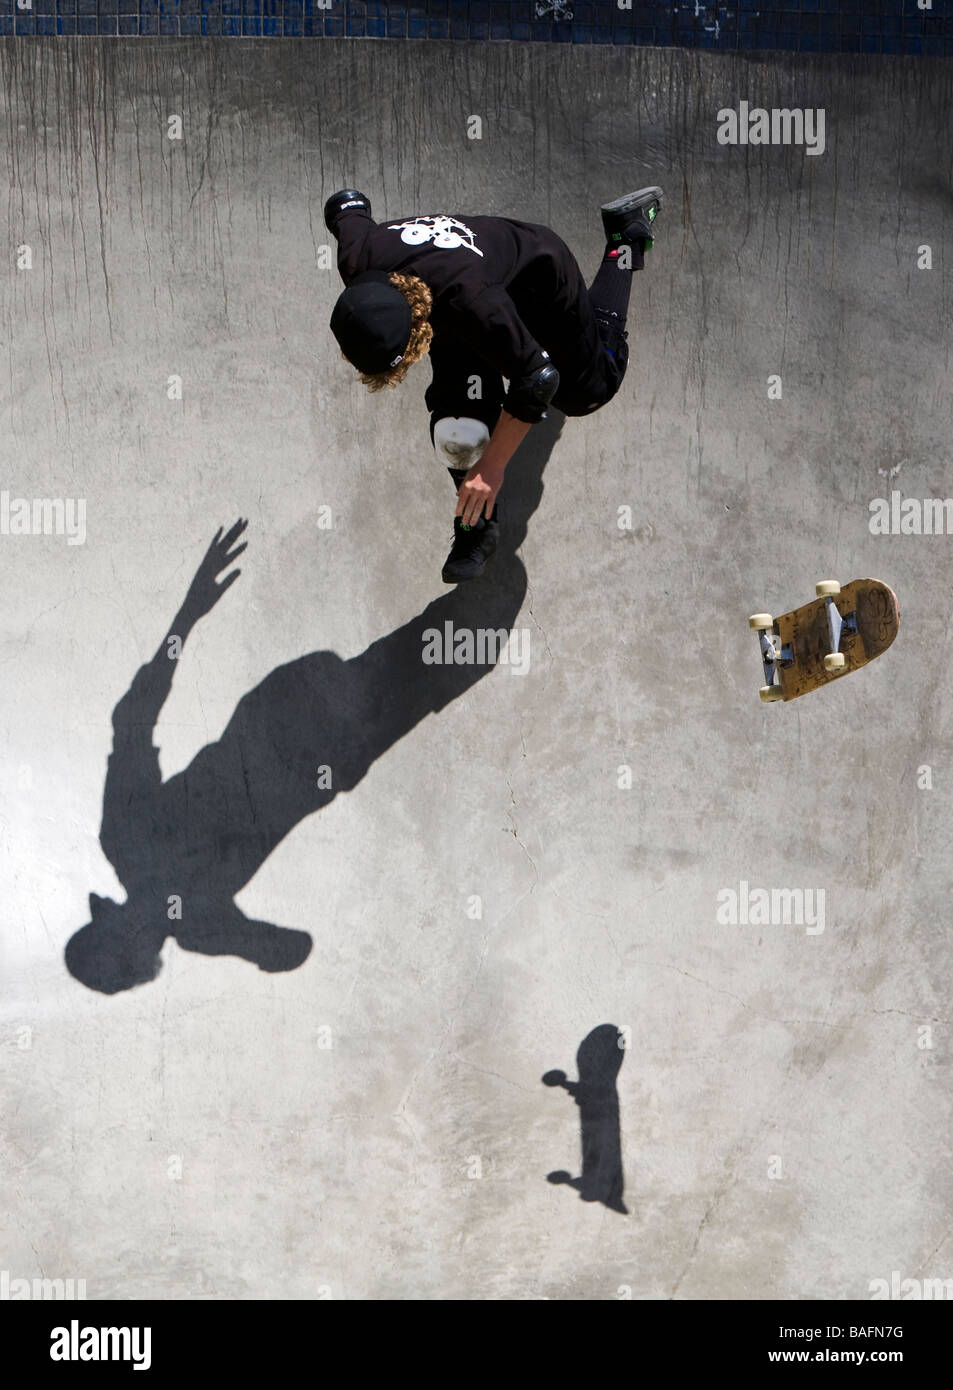 Skateboarder doing tricks Culver City Skateboard Park Culver City Los Angeles County California United States of Stock Photo